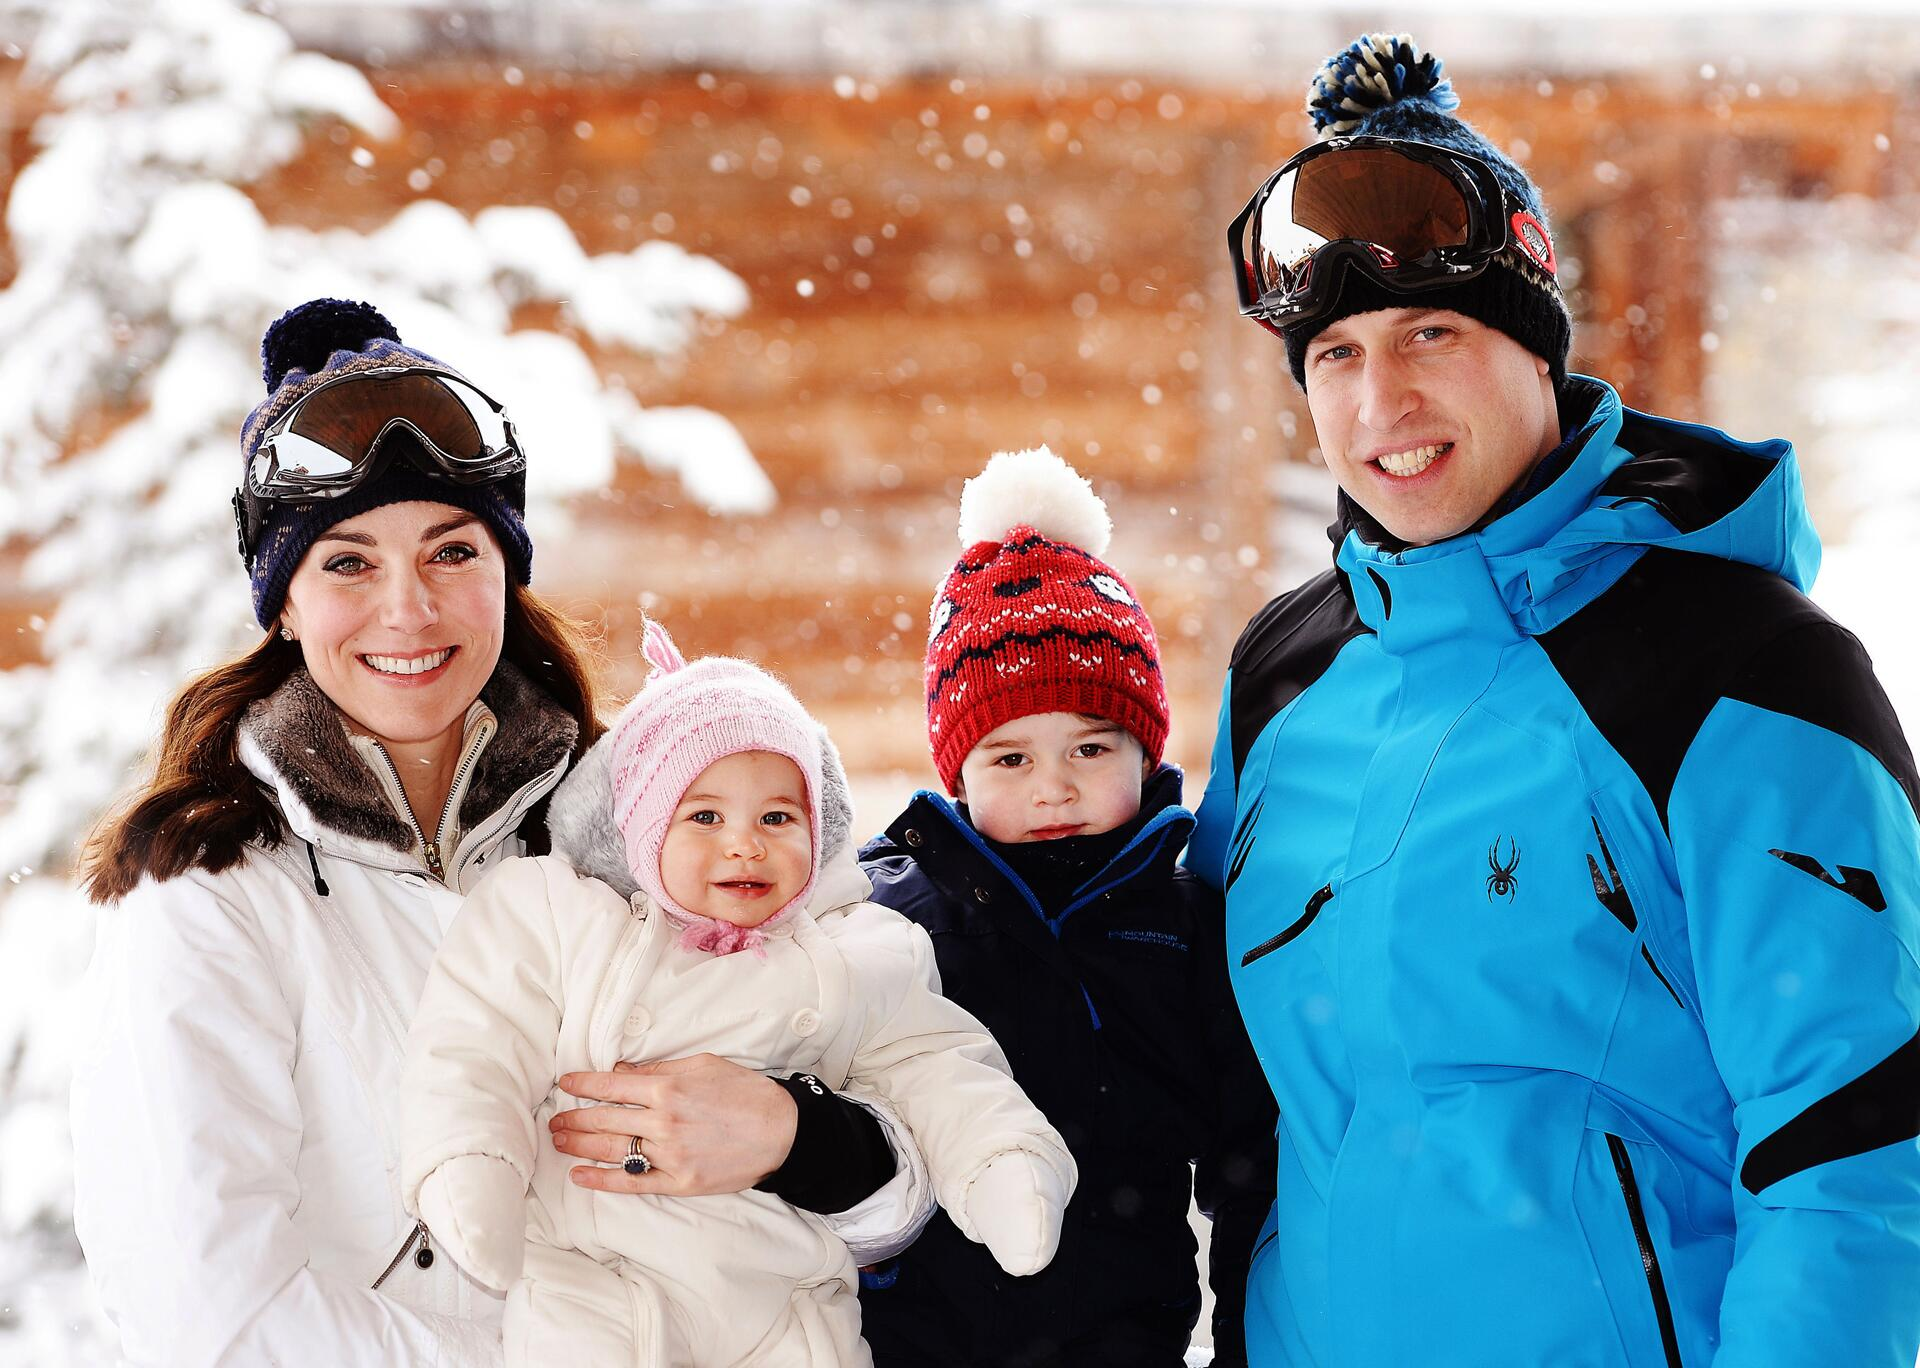 Bild zu Herzogin Kate, Prinzessin Charlotte, Prinz George, Prinz William